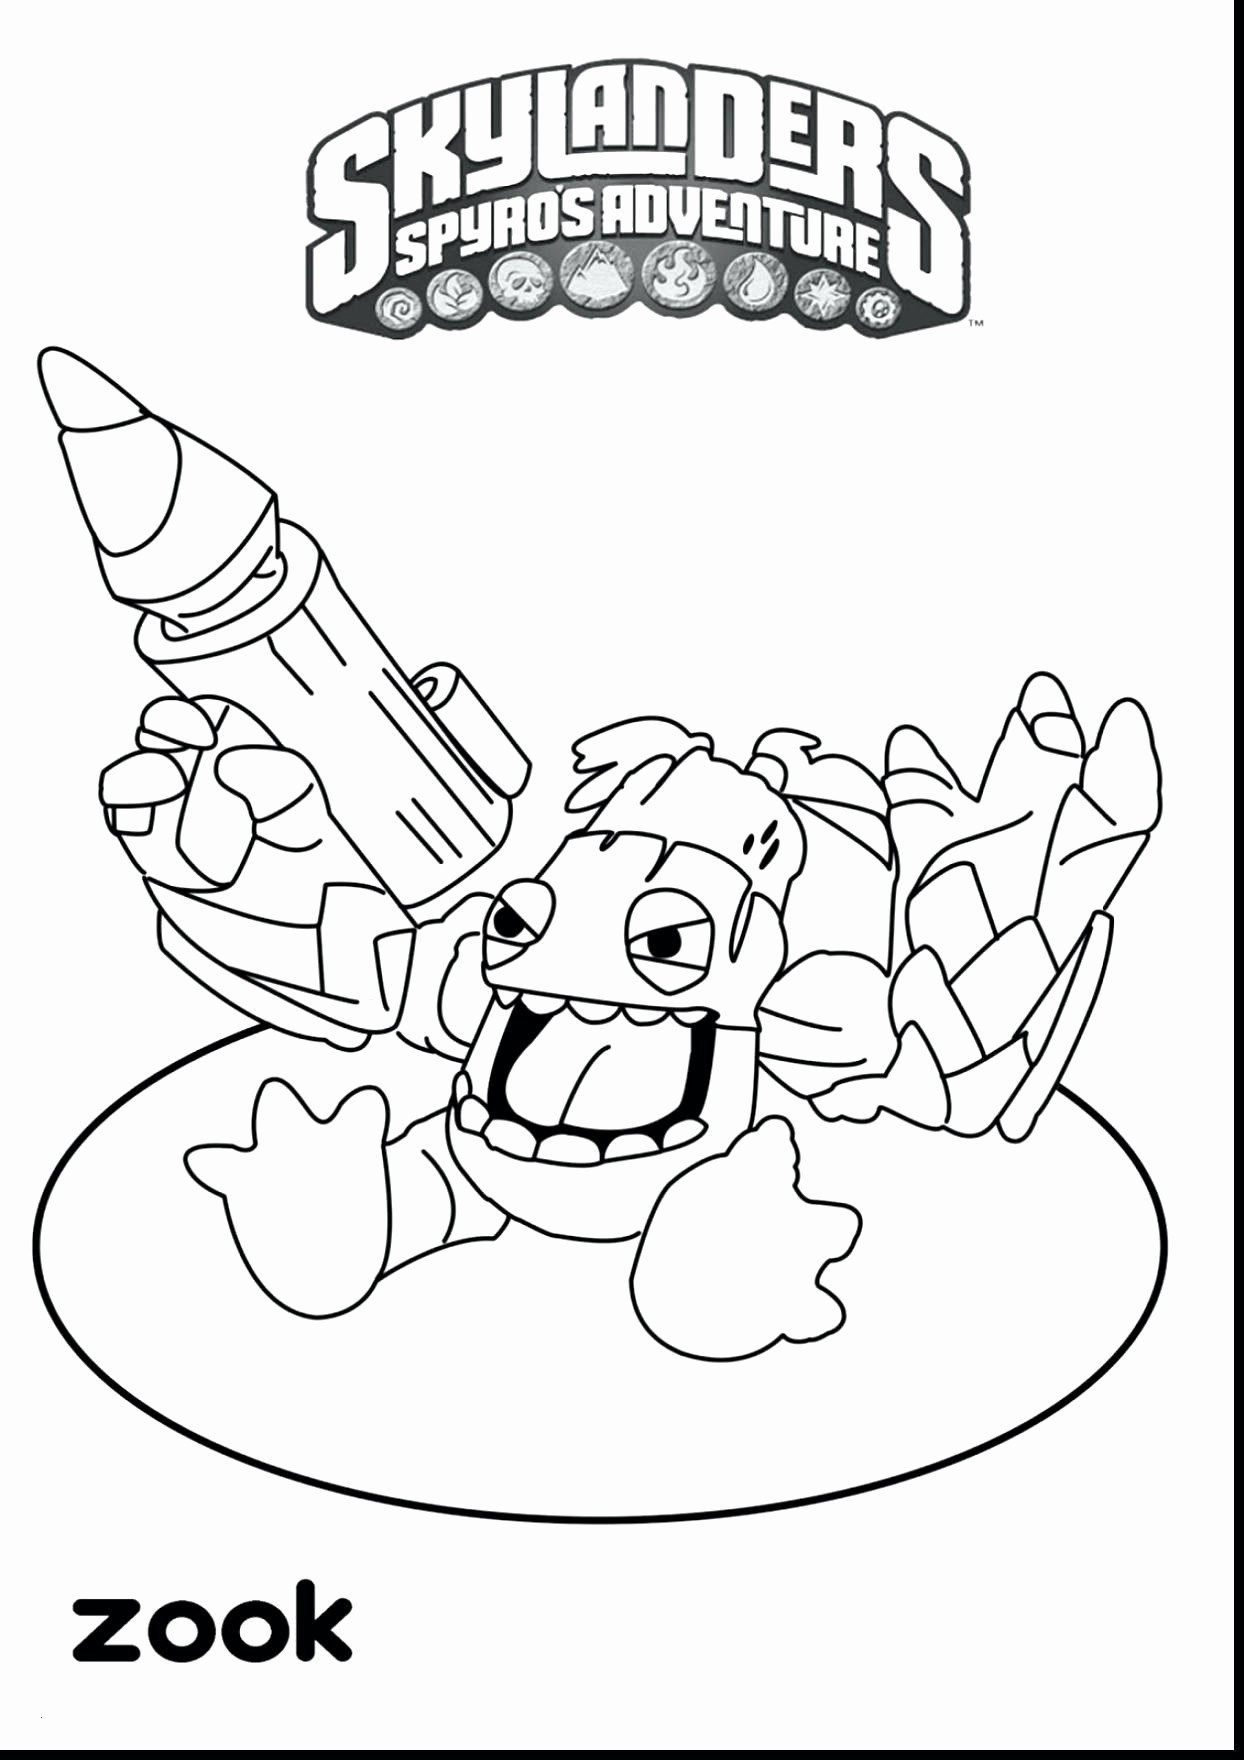 Detective Coloring Pages  Gallery 7c - To print for your project